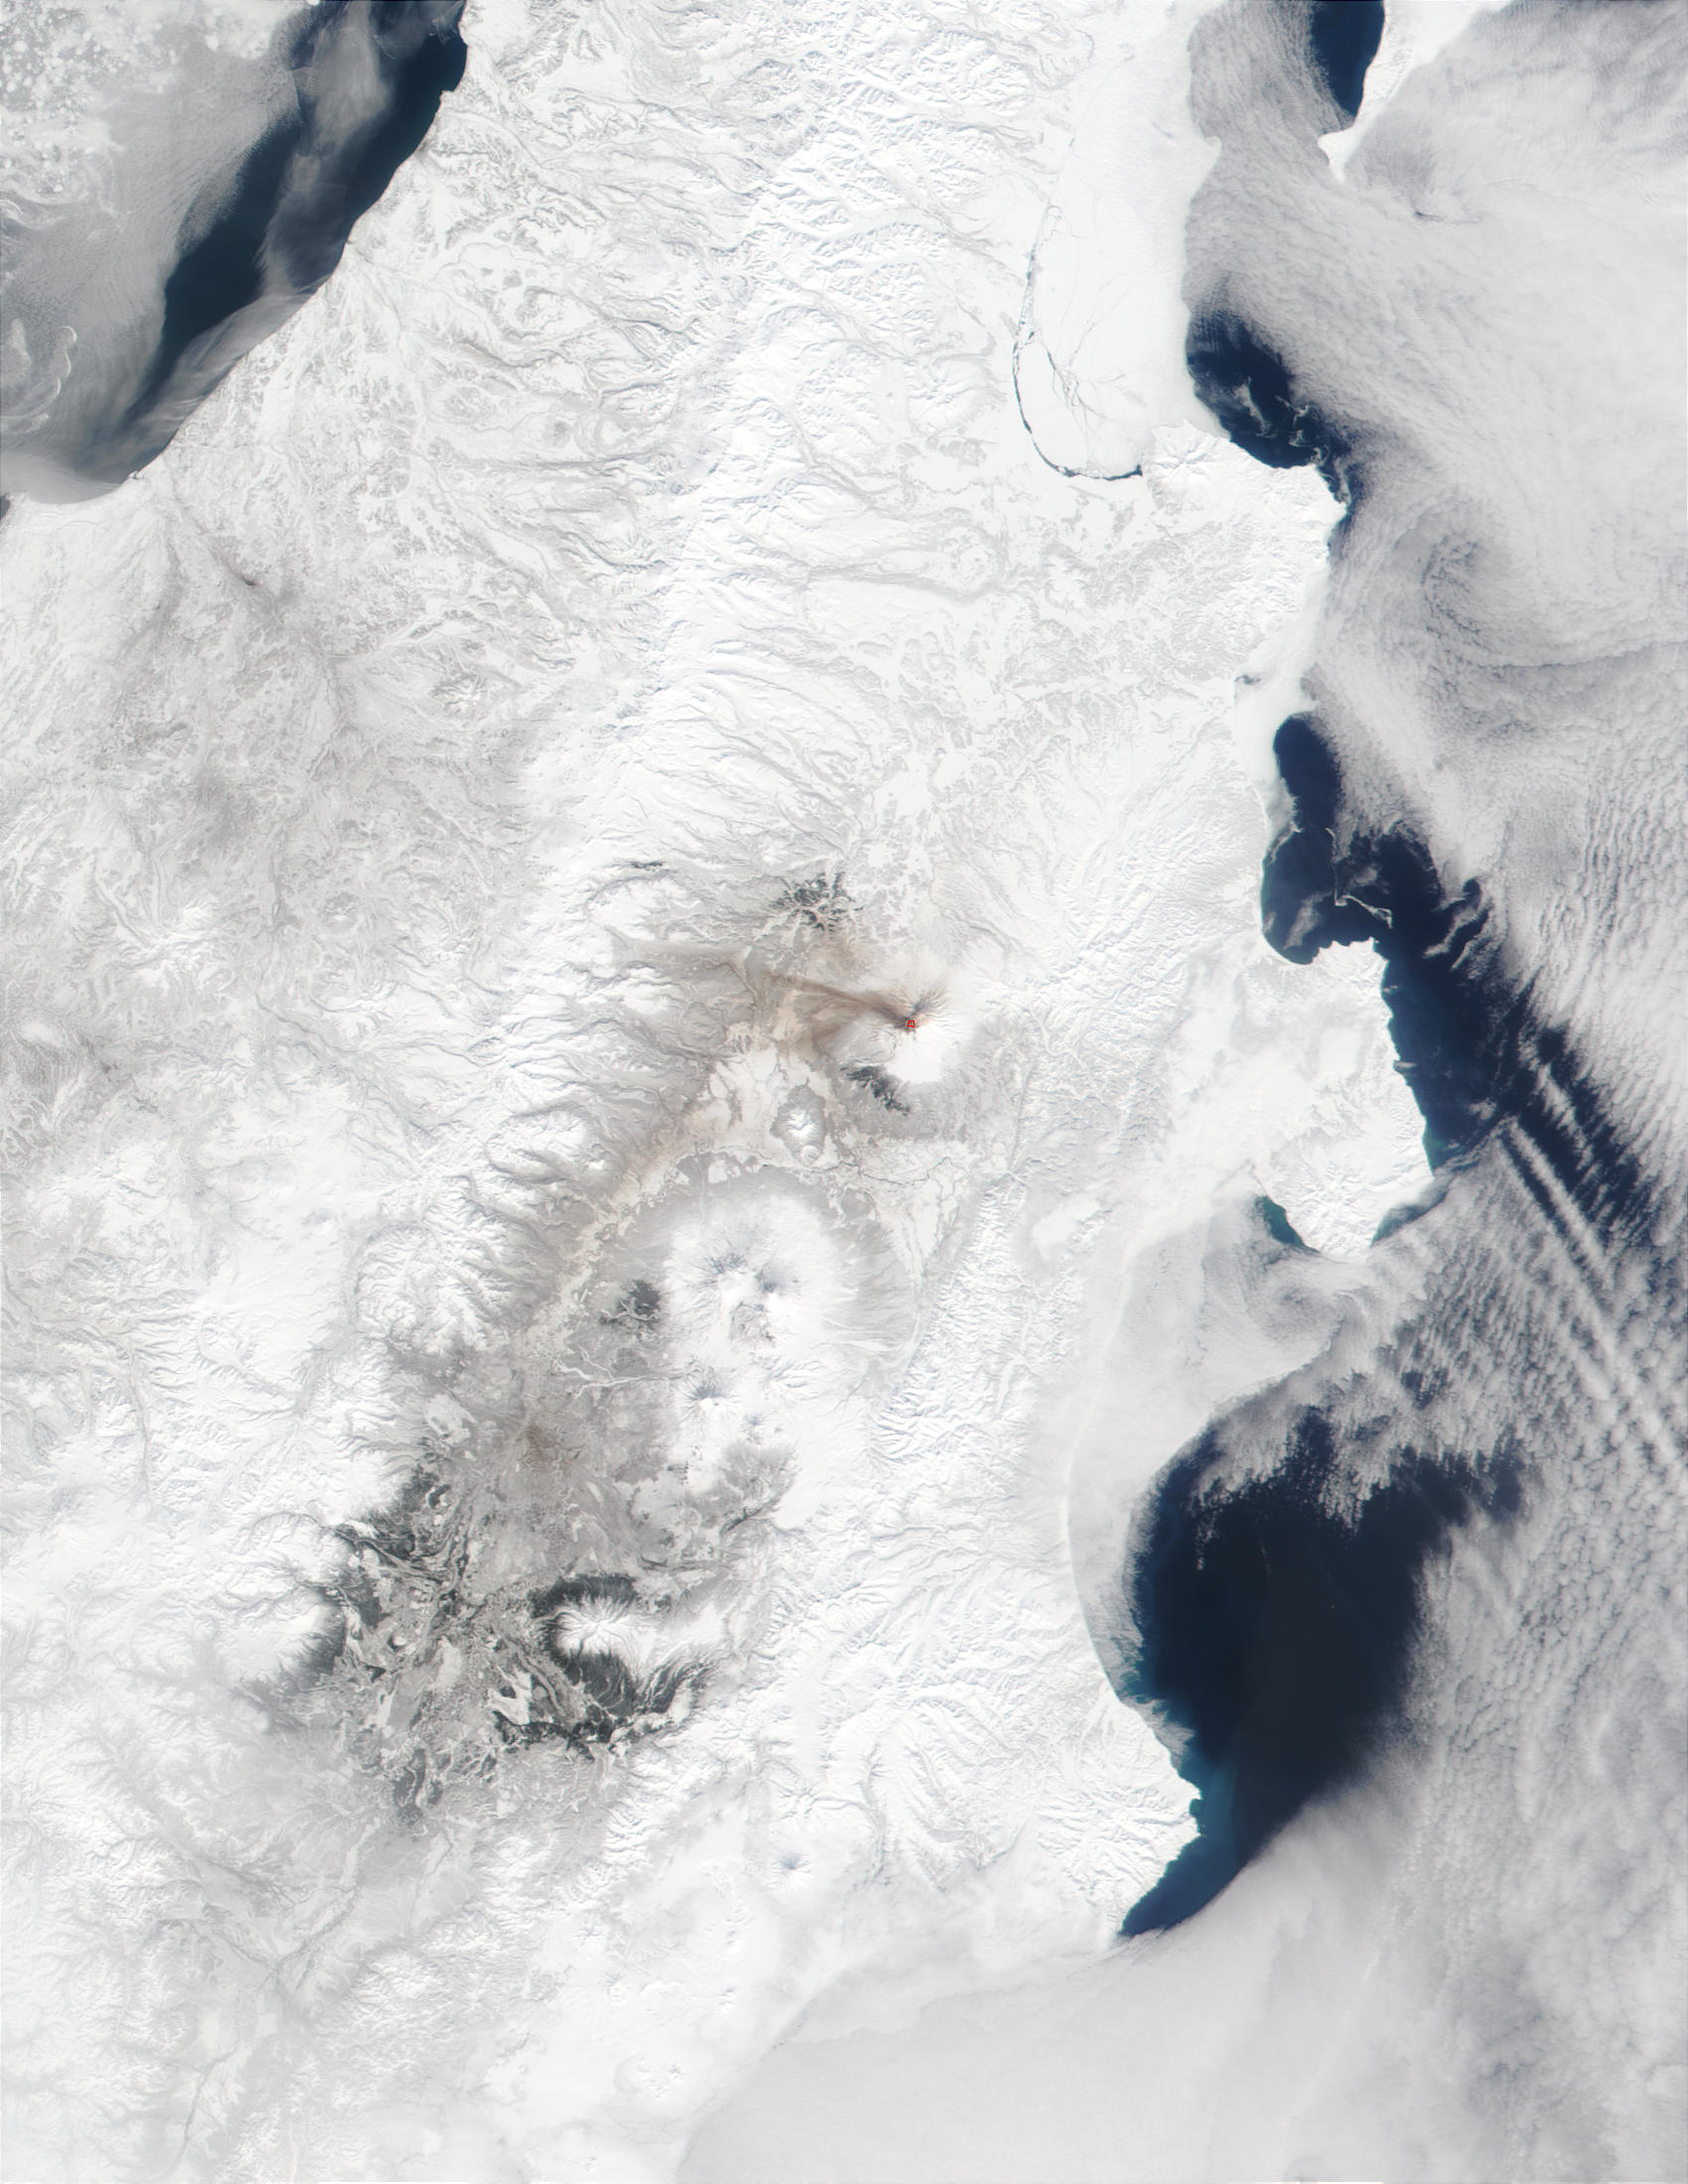 Eruption of Shiveluch Volcano in Kamchatka Peninsula, Russia - related image preview